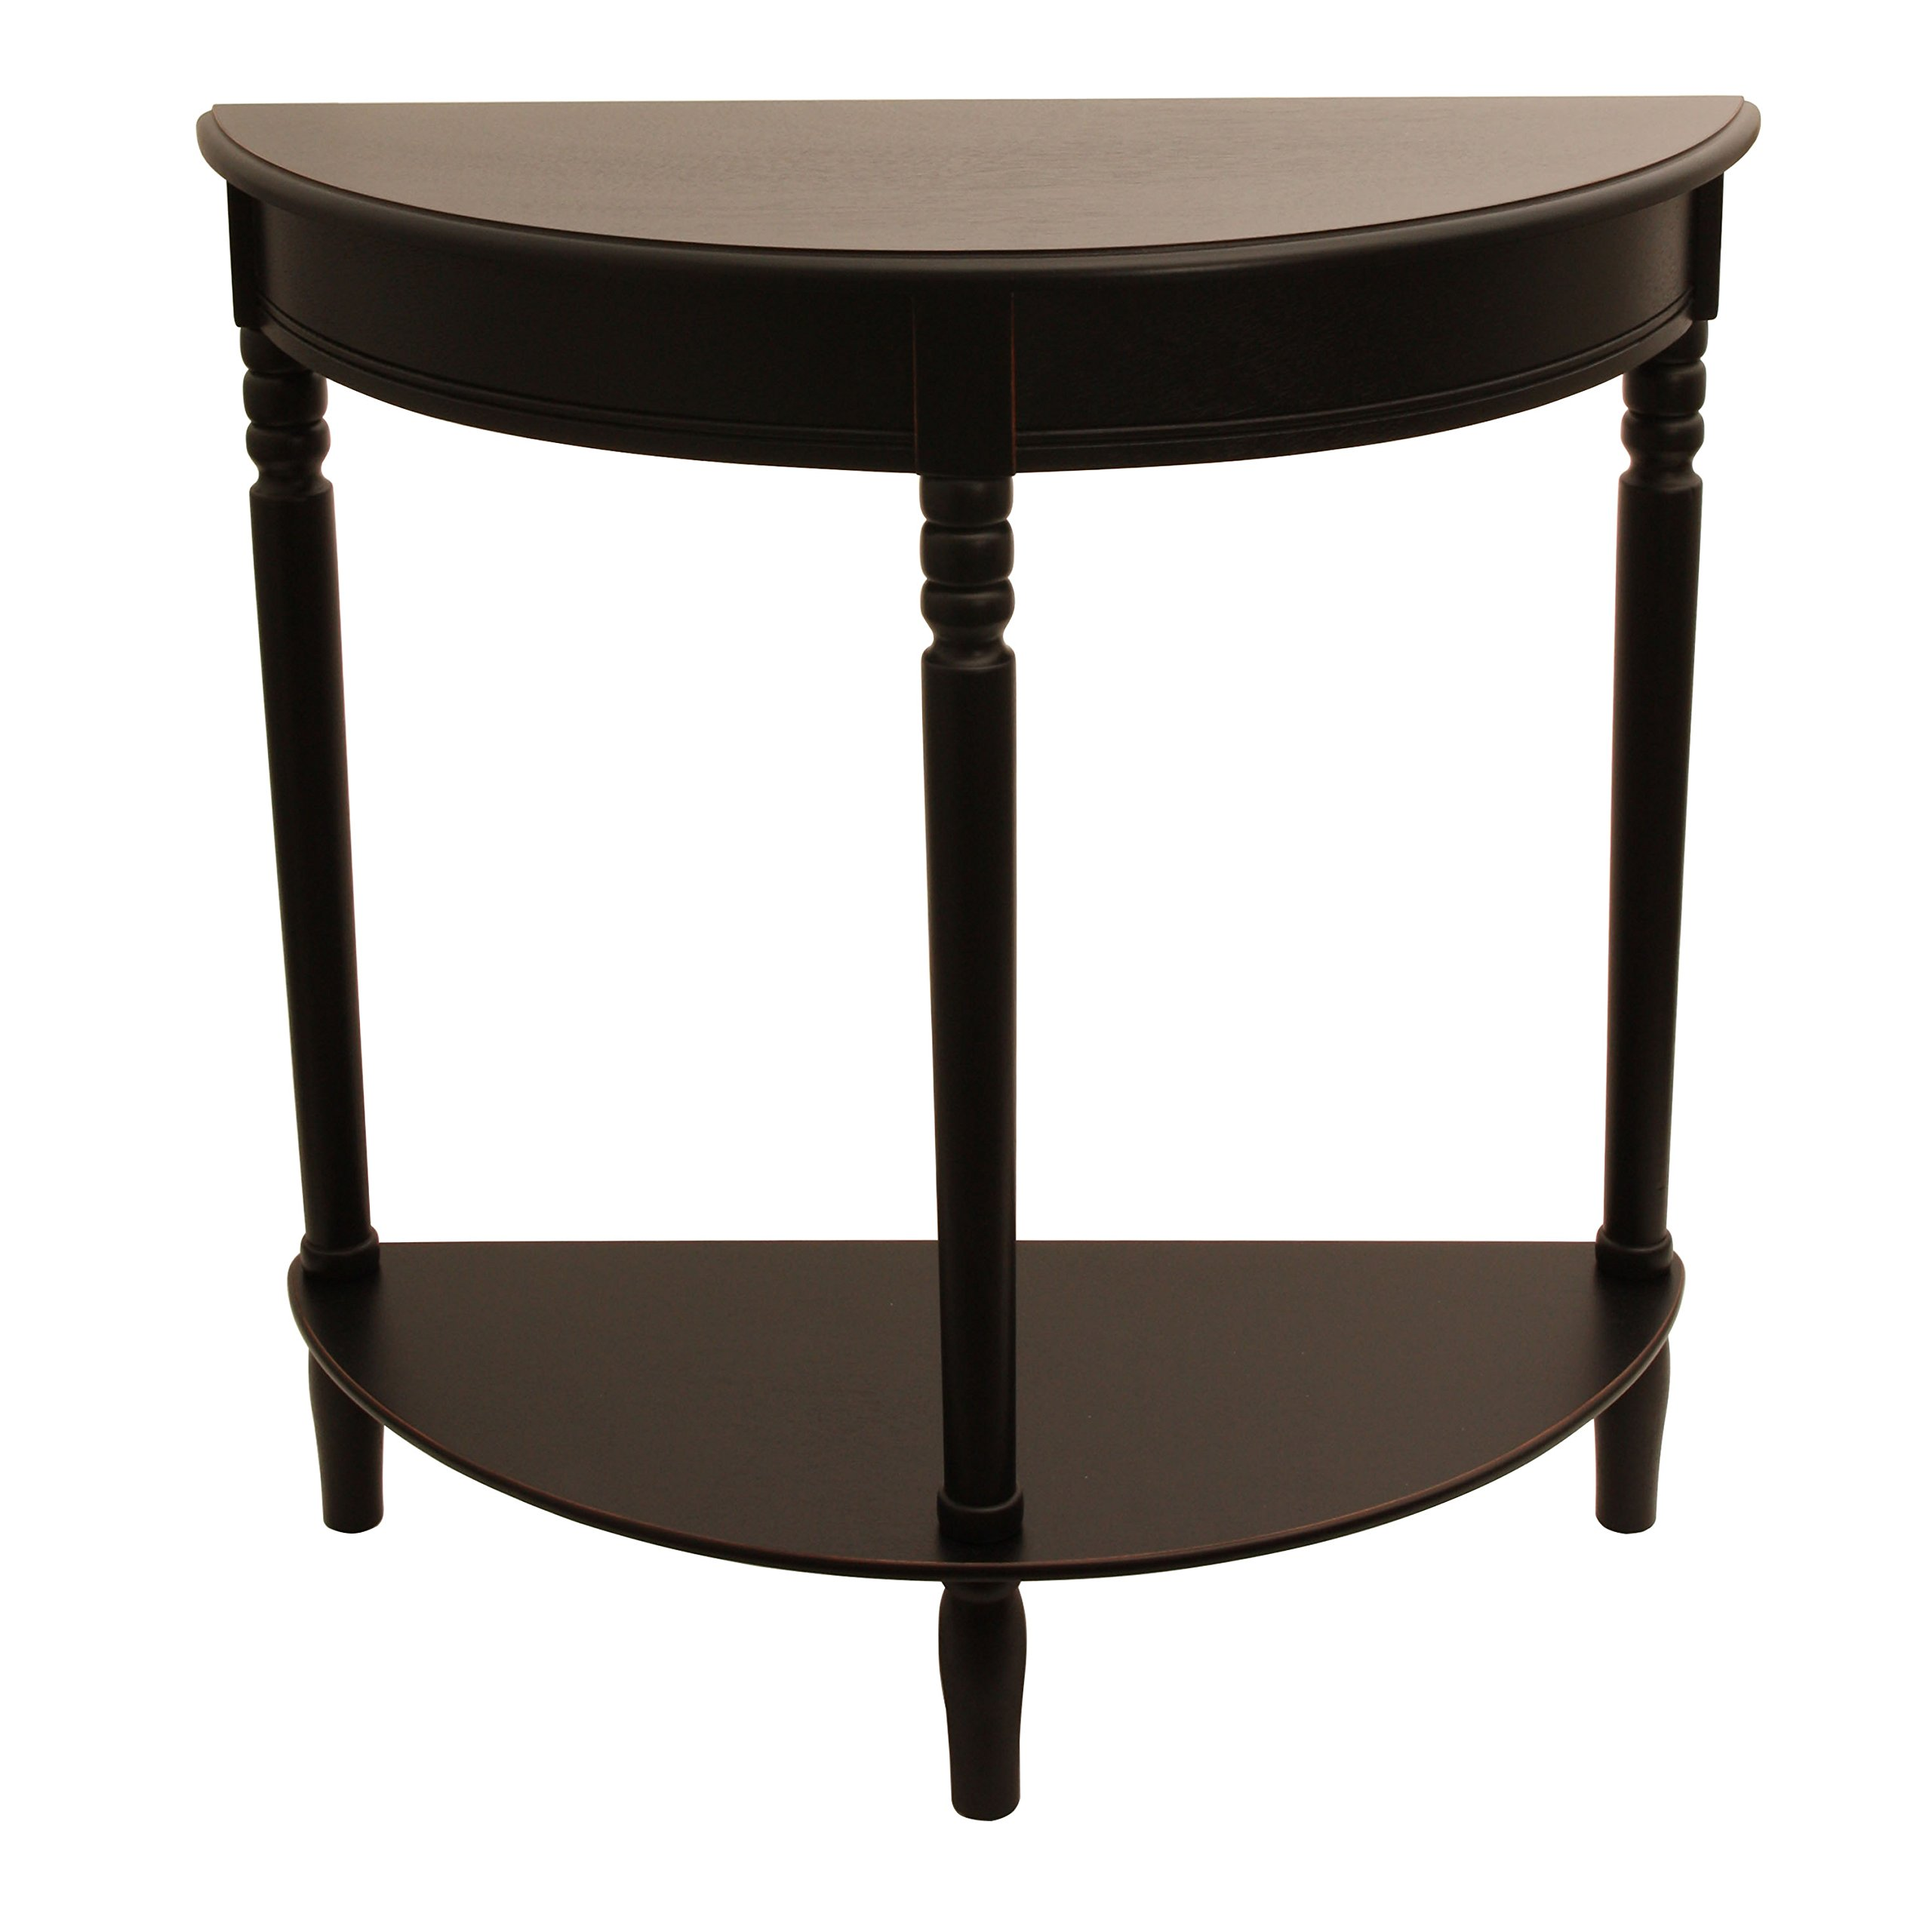 Décor Therapy FR1799 Eased Edge Black Half Round Table, Black Finish